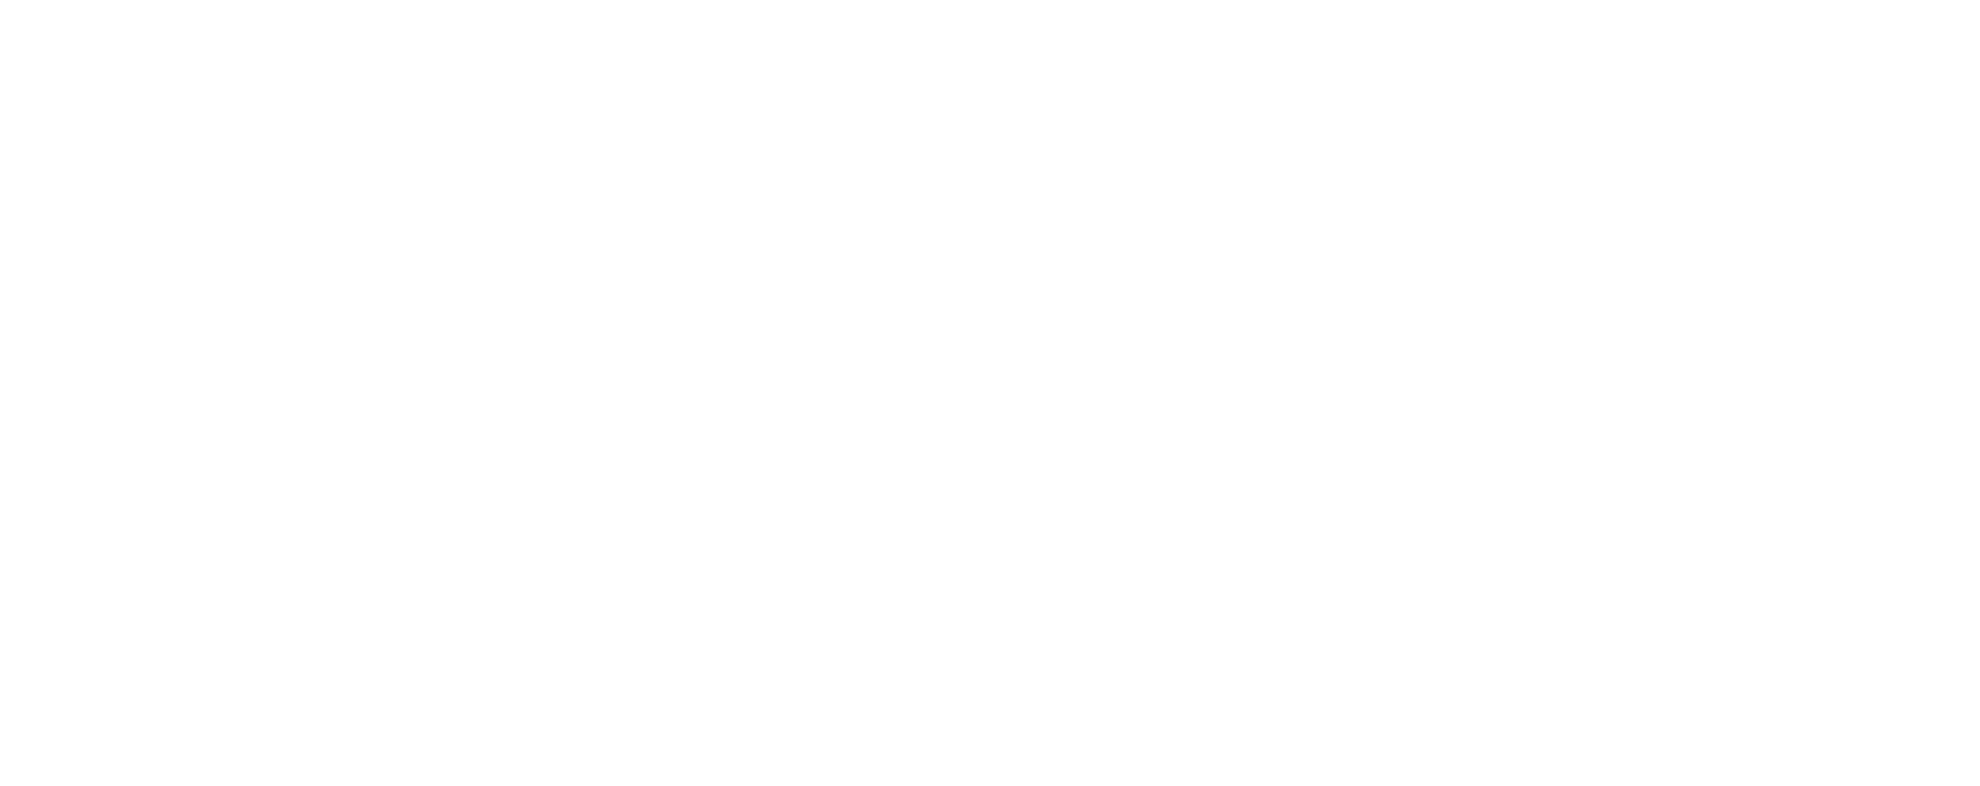 The Meaningful Company